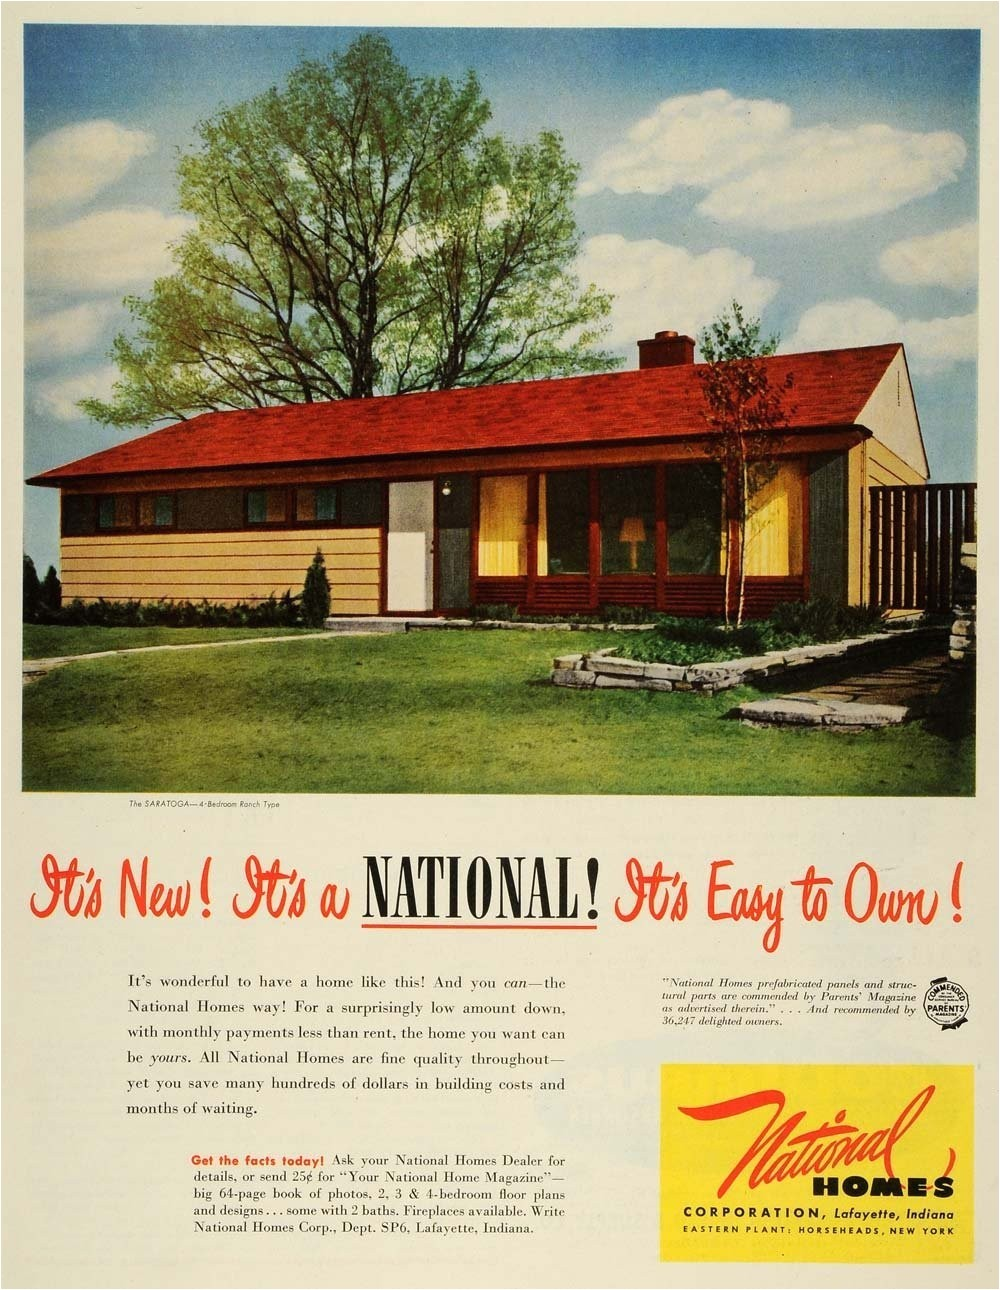 national homes corporation floor plans new national homes corporation floor plans gallery home fixtures